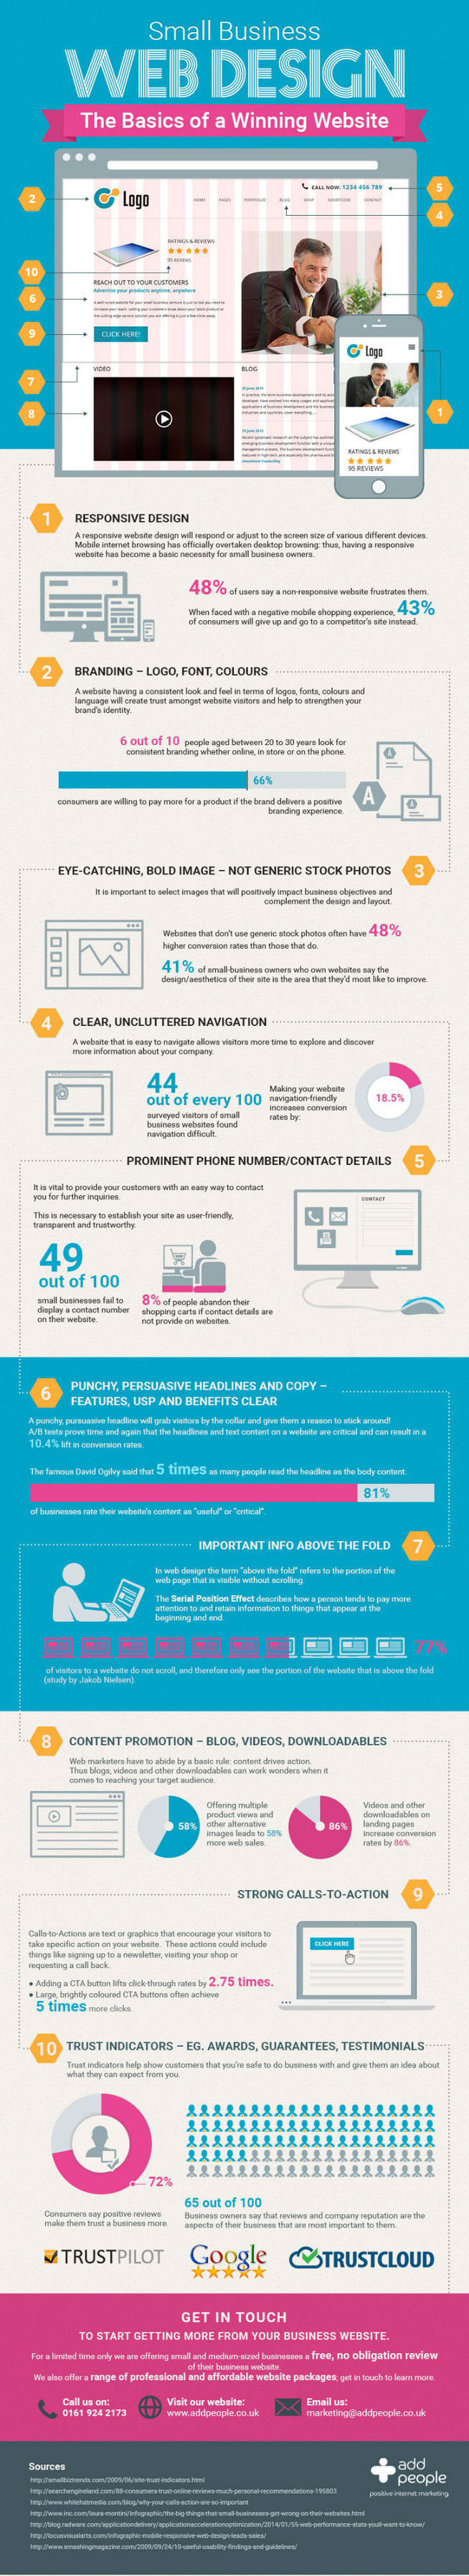 Top Tips For Small Business Website Design [Infographic]